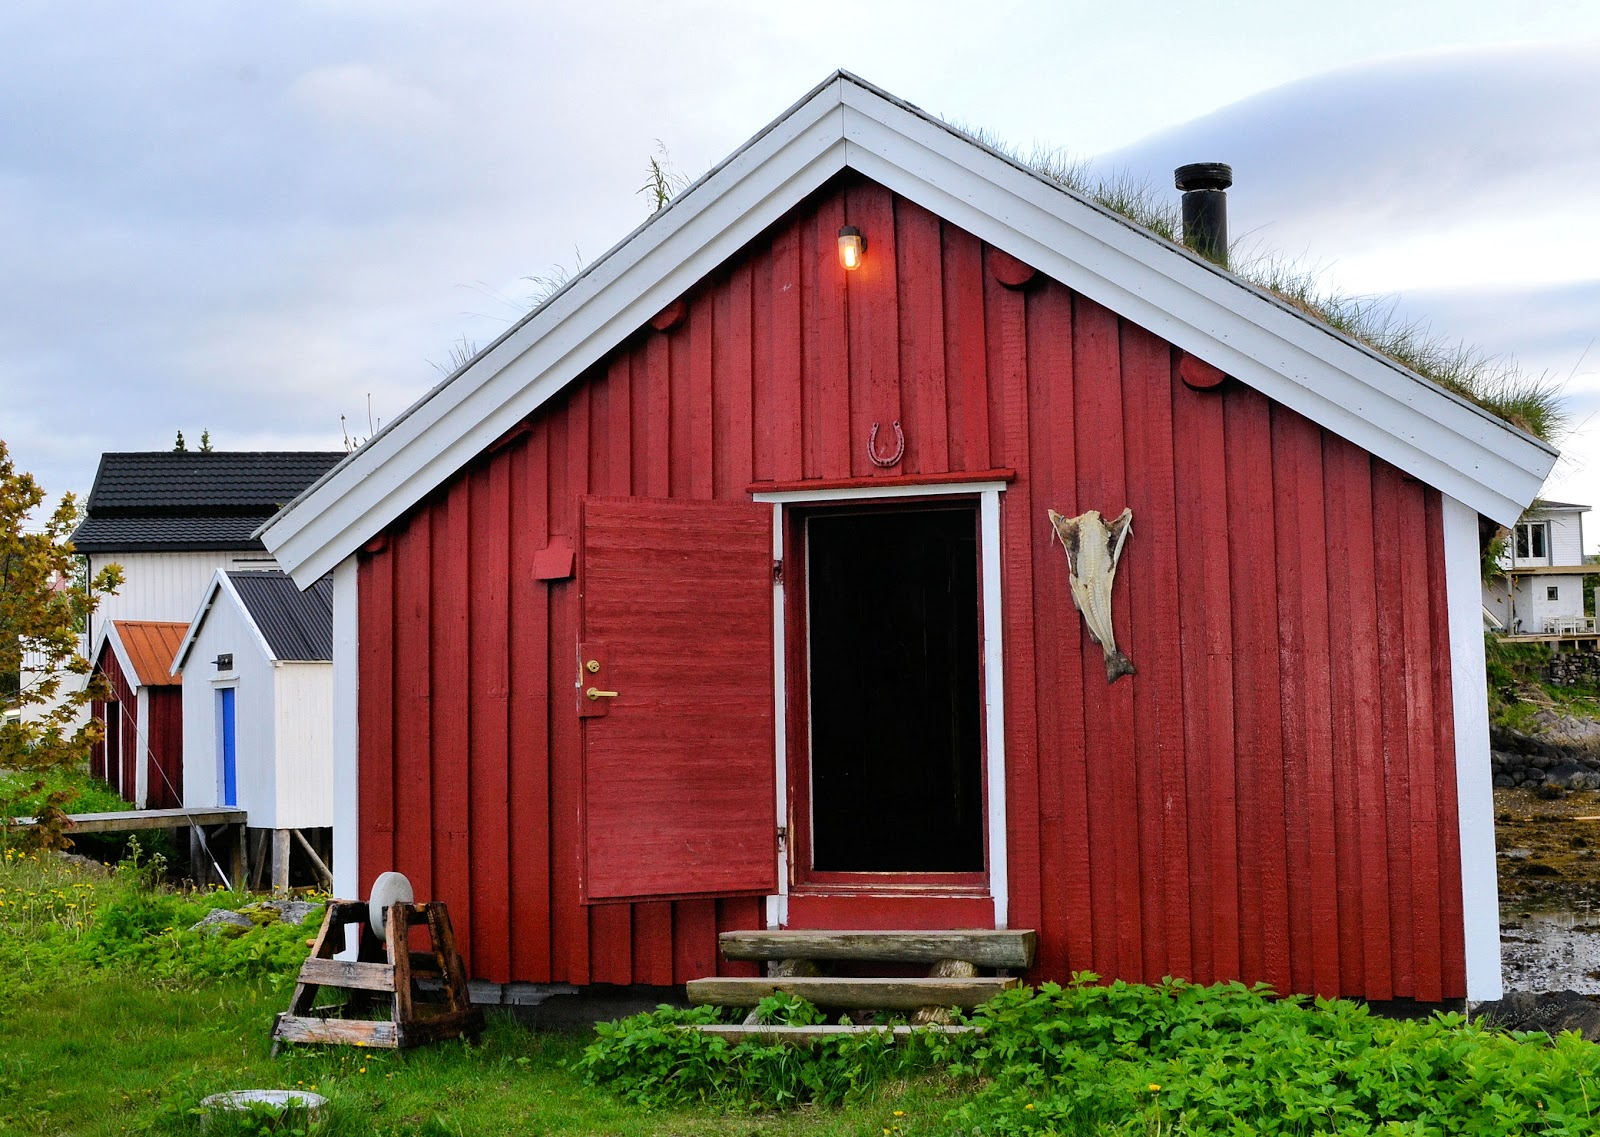 This authentic rorbu cabin in Svolvær, Norway, dates back to 1870.